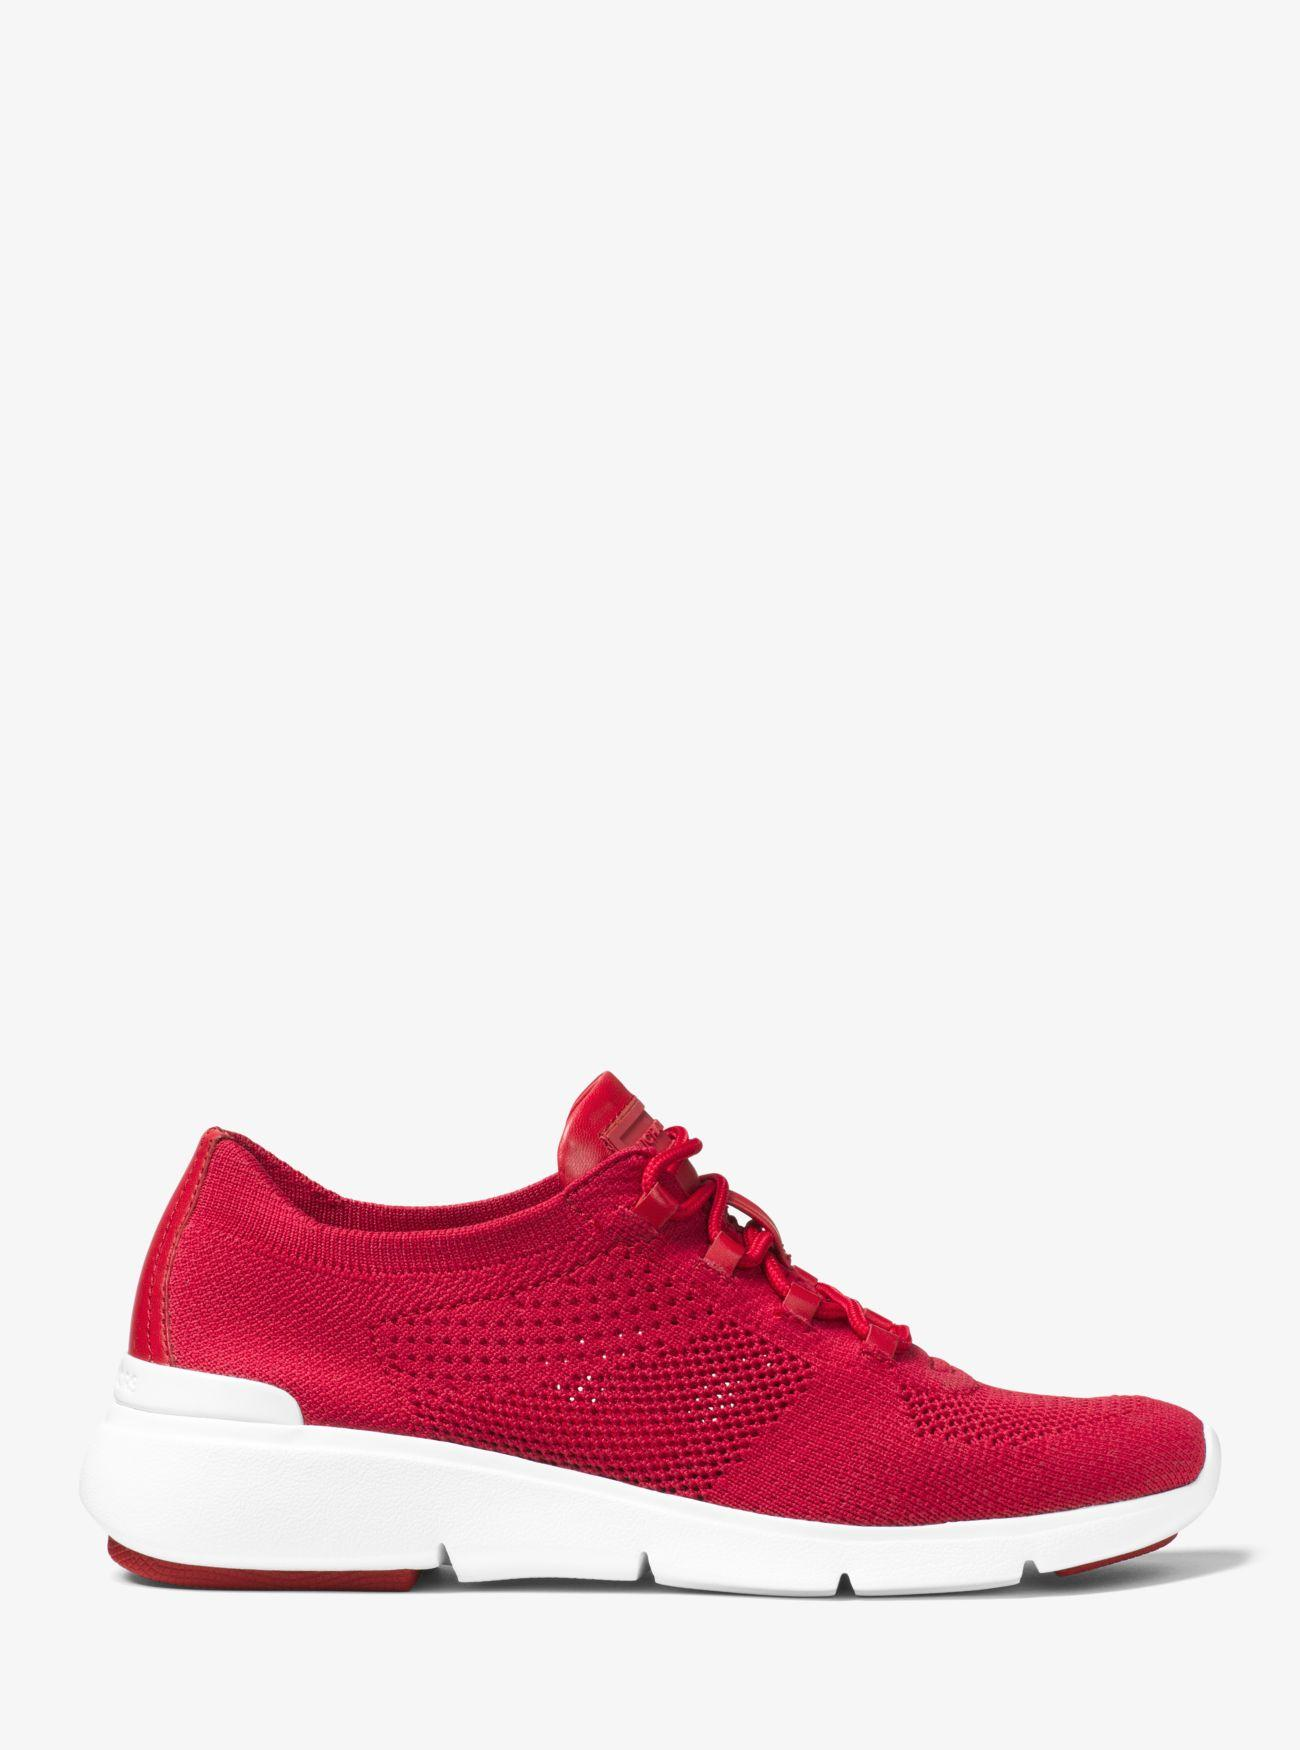 Michael Kors Rubber Skyler Knit Trainer in Bright Red (Red)